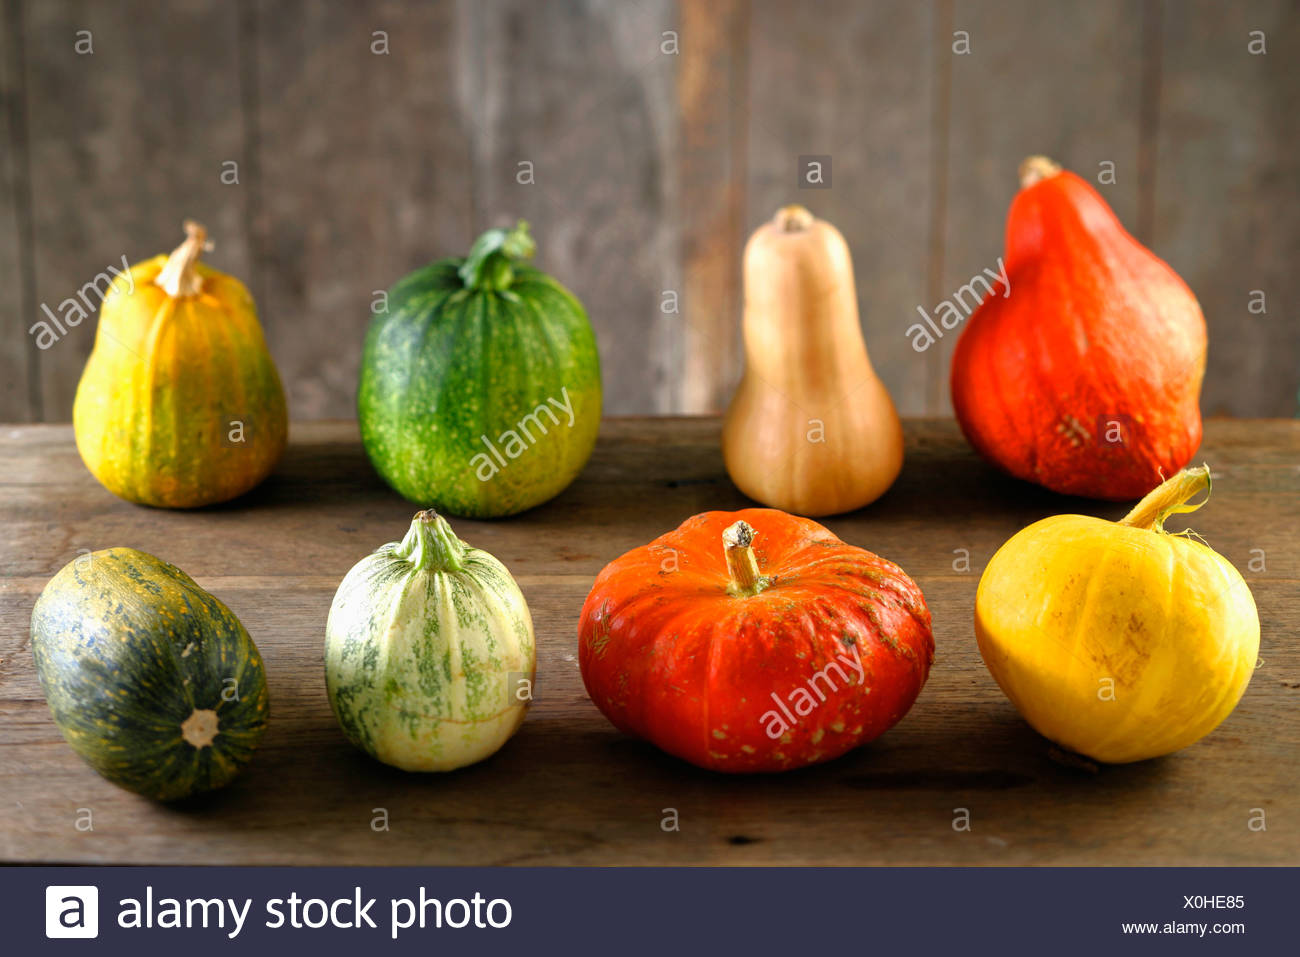 Old Fashioned Vegetables Stock Photos Amp Old Fashioned